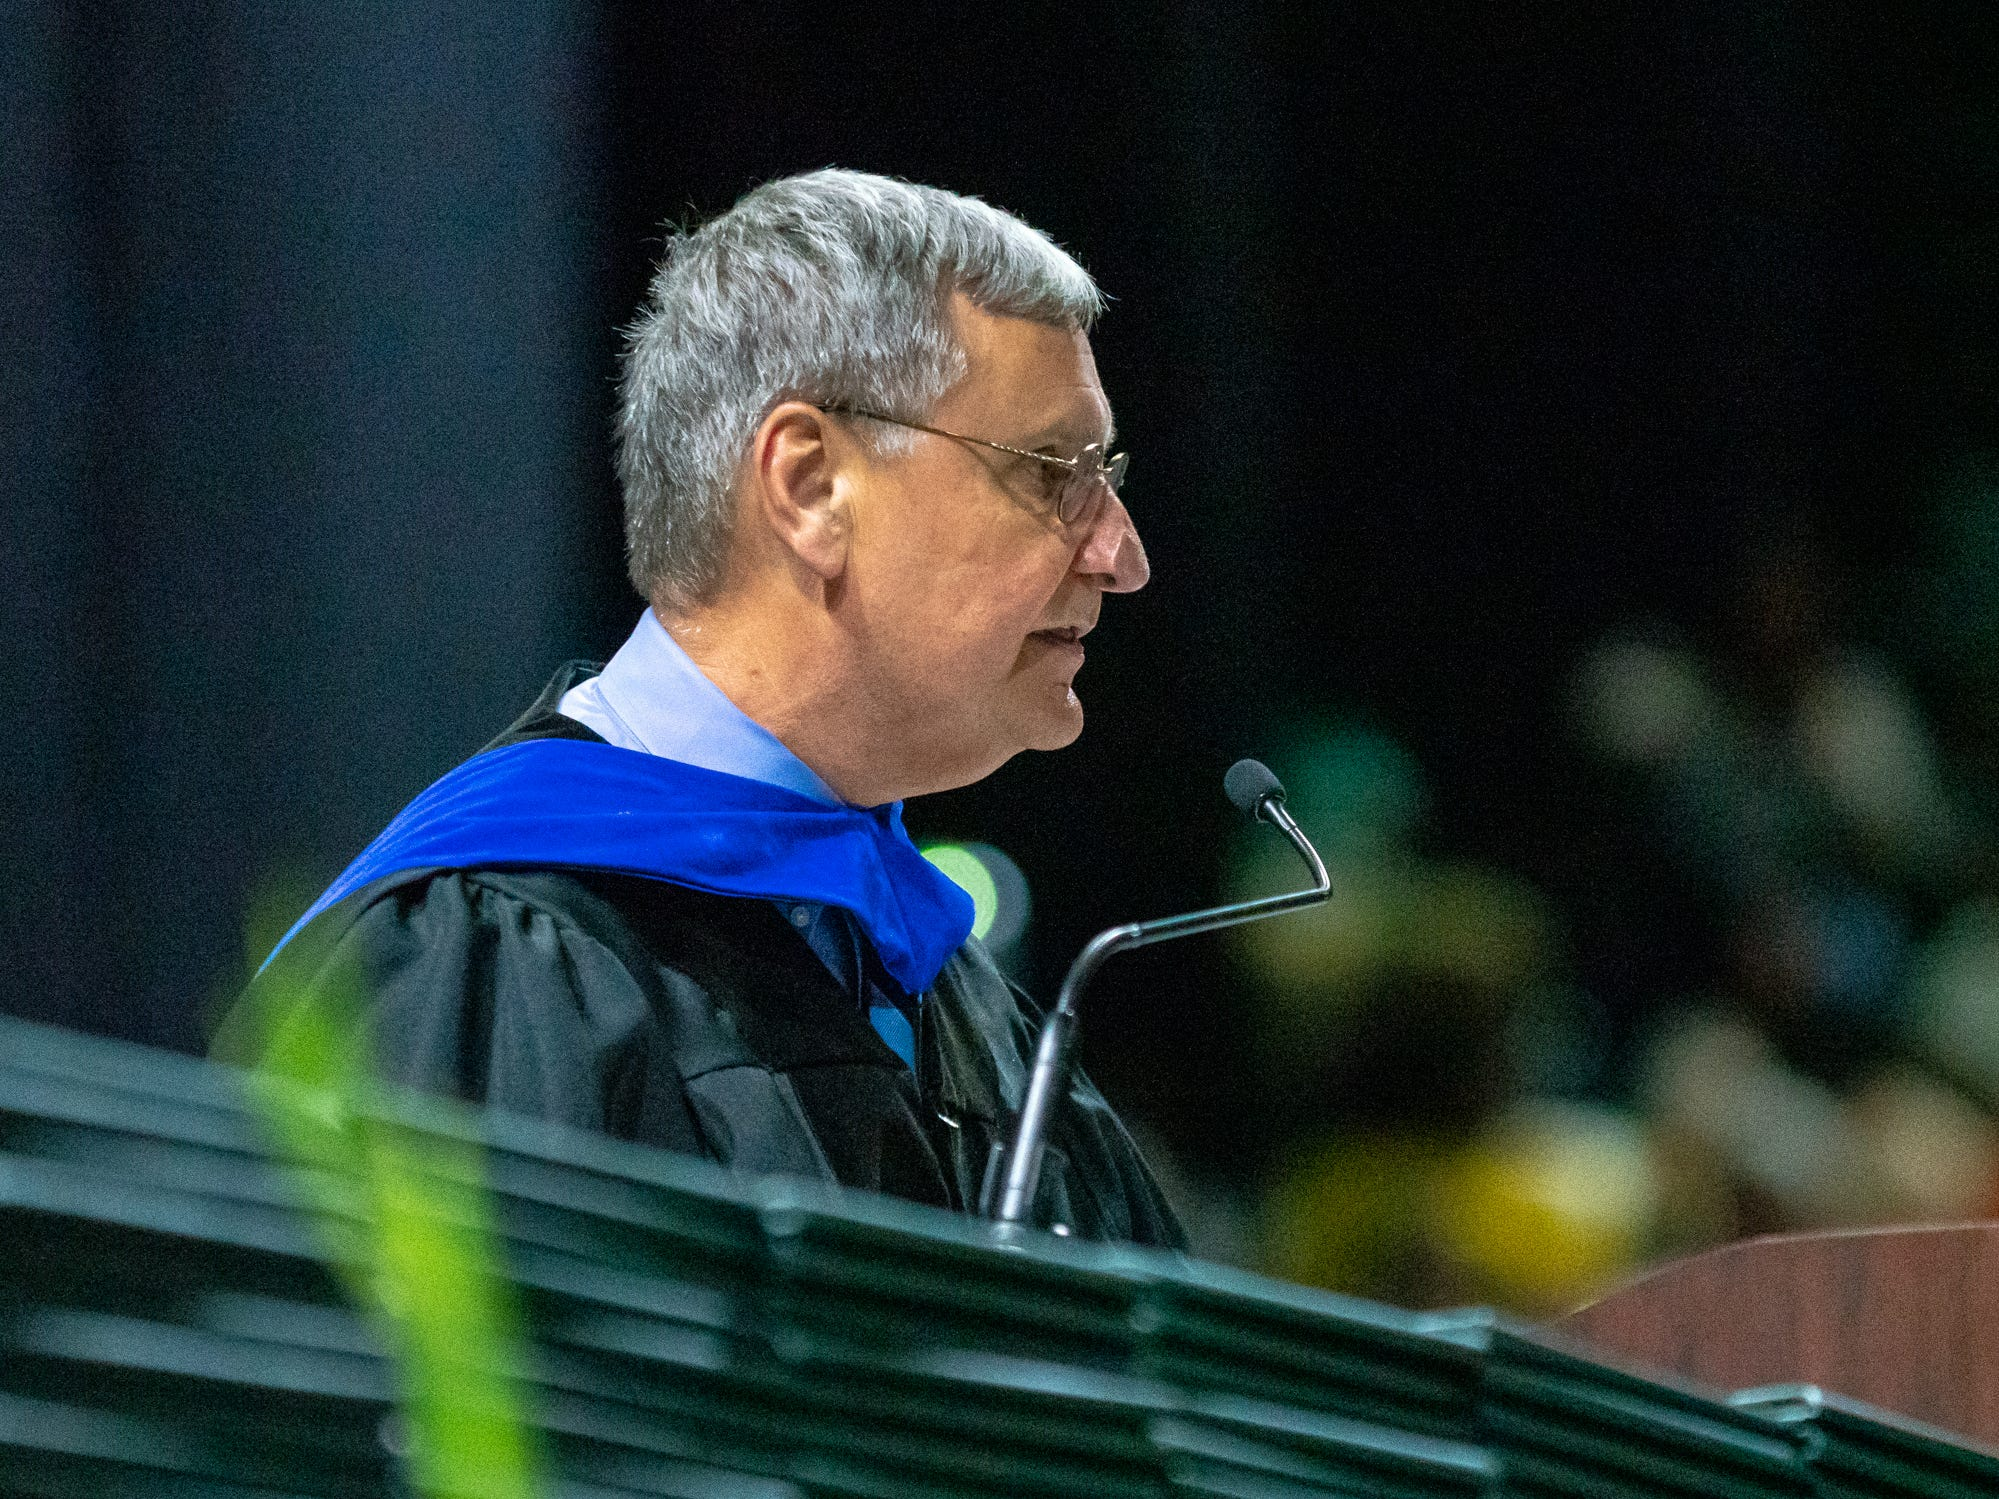 Superintendent Dr. Donald Aguillard gives a speech to the graduating seniors as Lafayette High School holds its graduation ceremony at the Cajundome on Saturday, May 11, 2019.